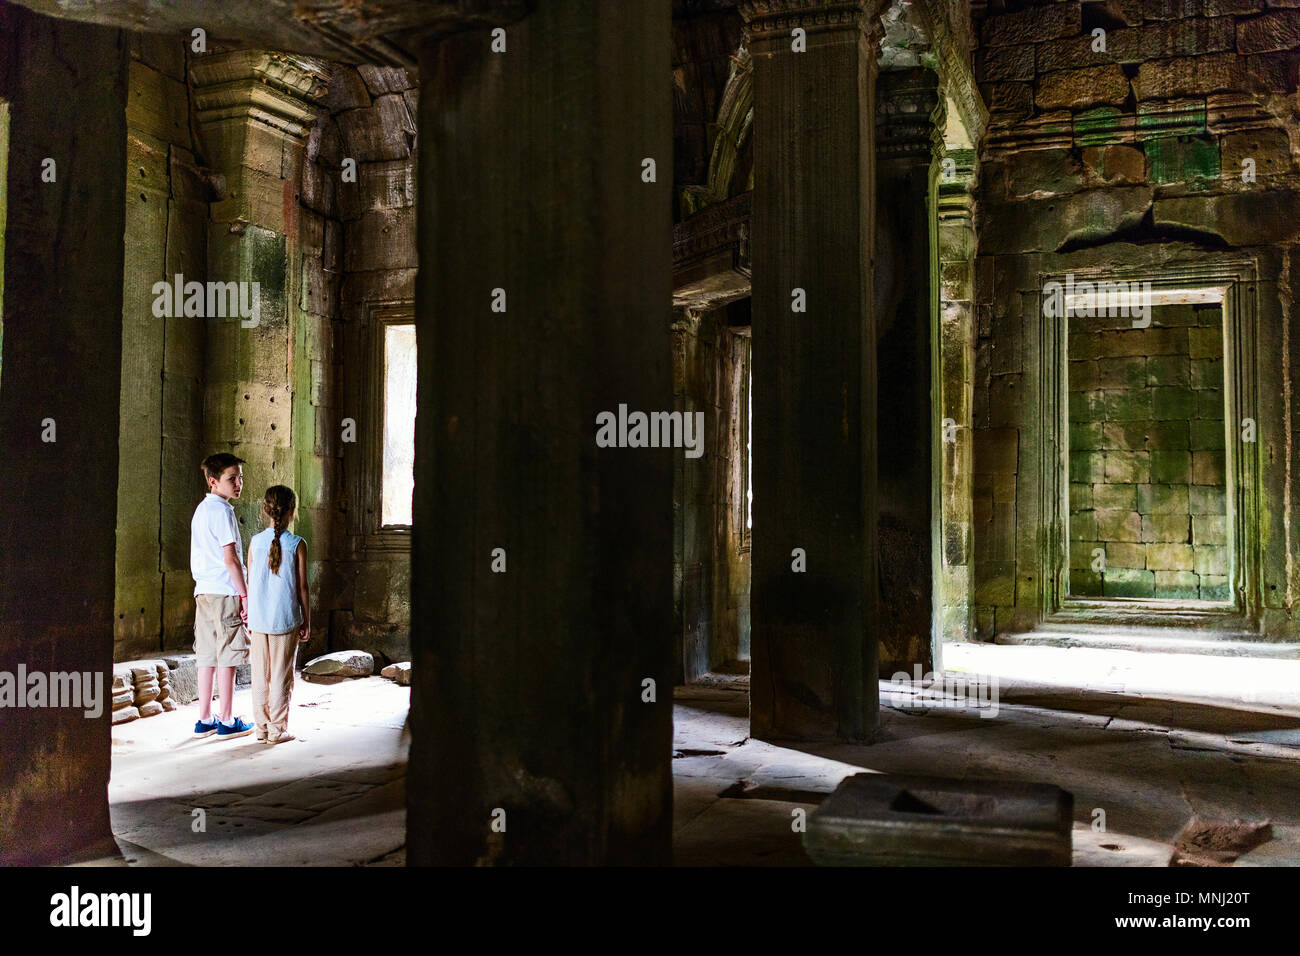 Kids at ancient Angkor Wat temple in Siem Reap in Cambodia - Stock Image